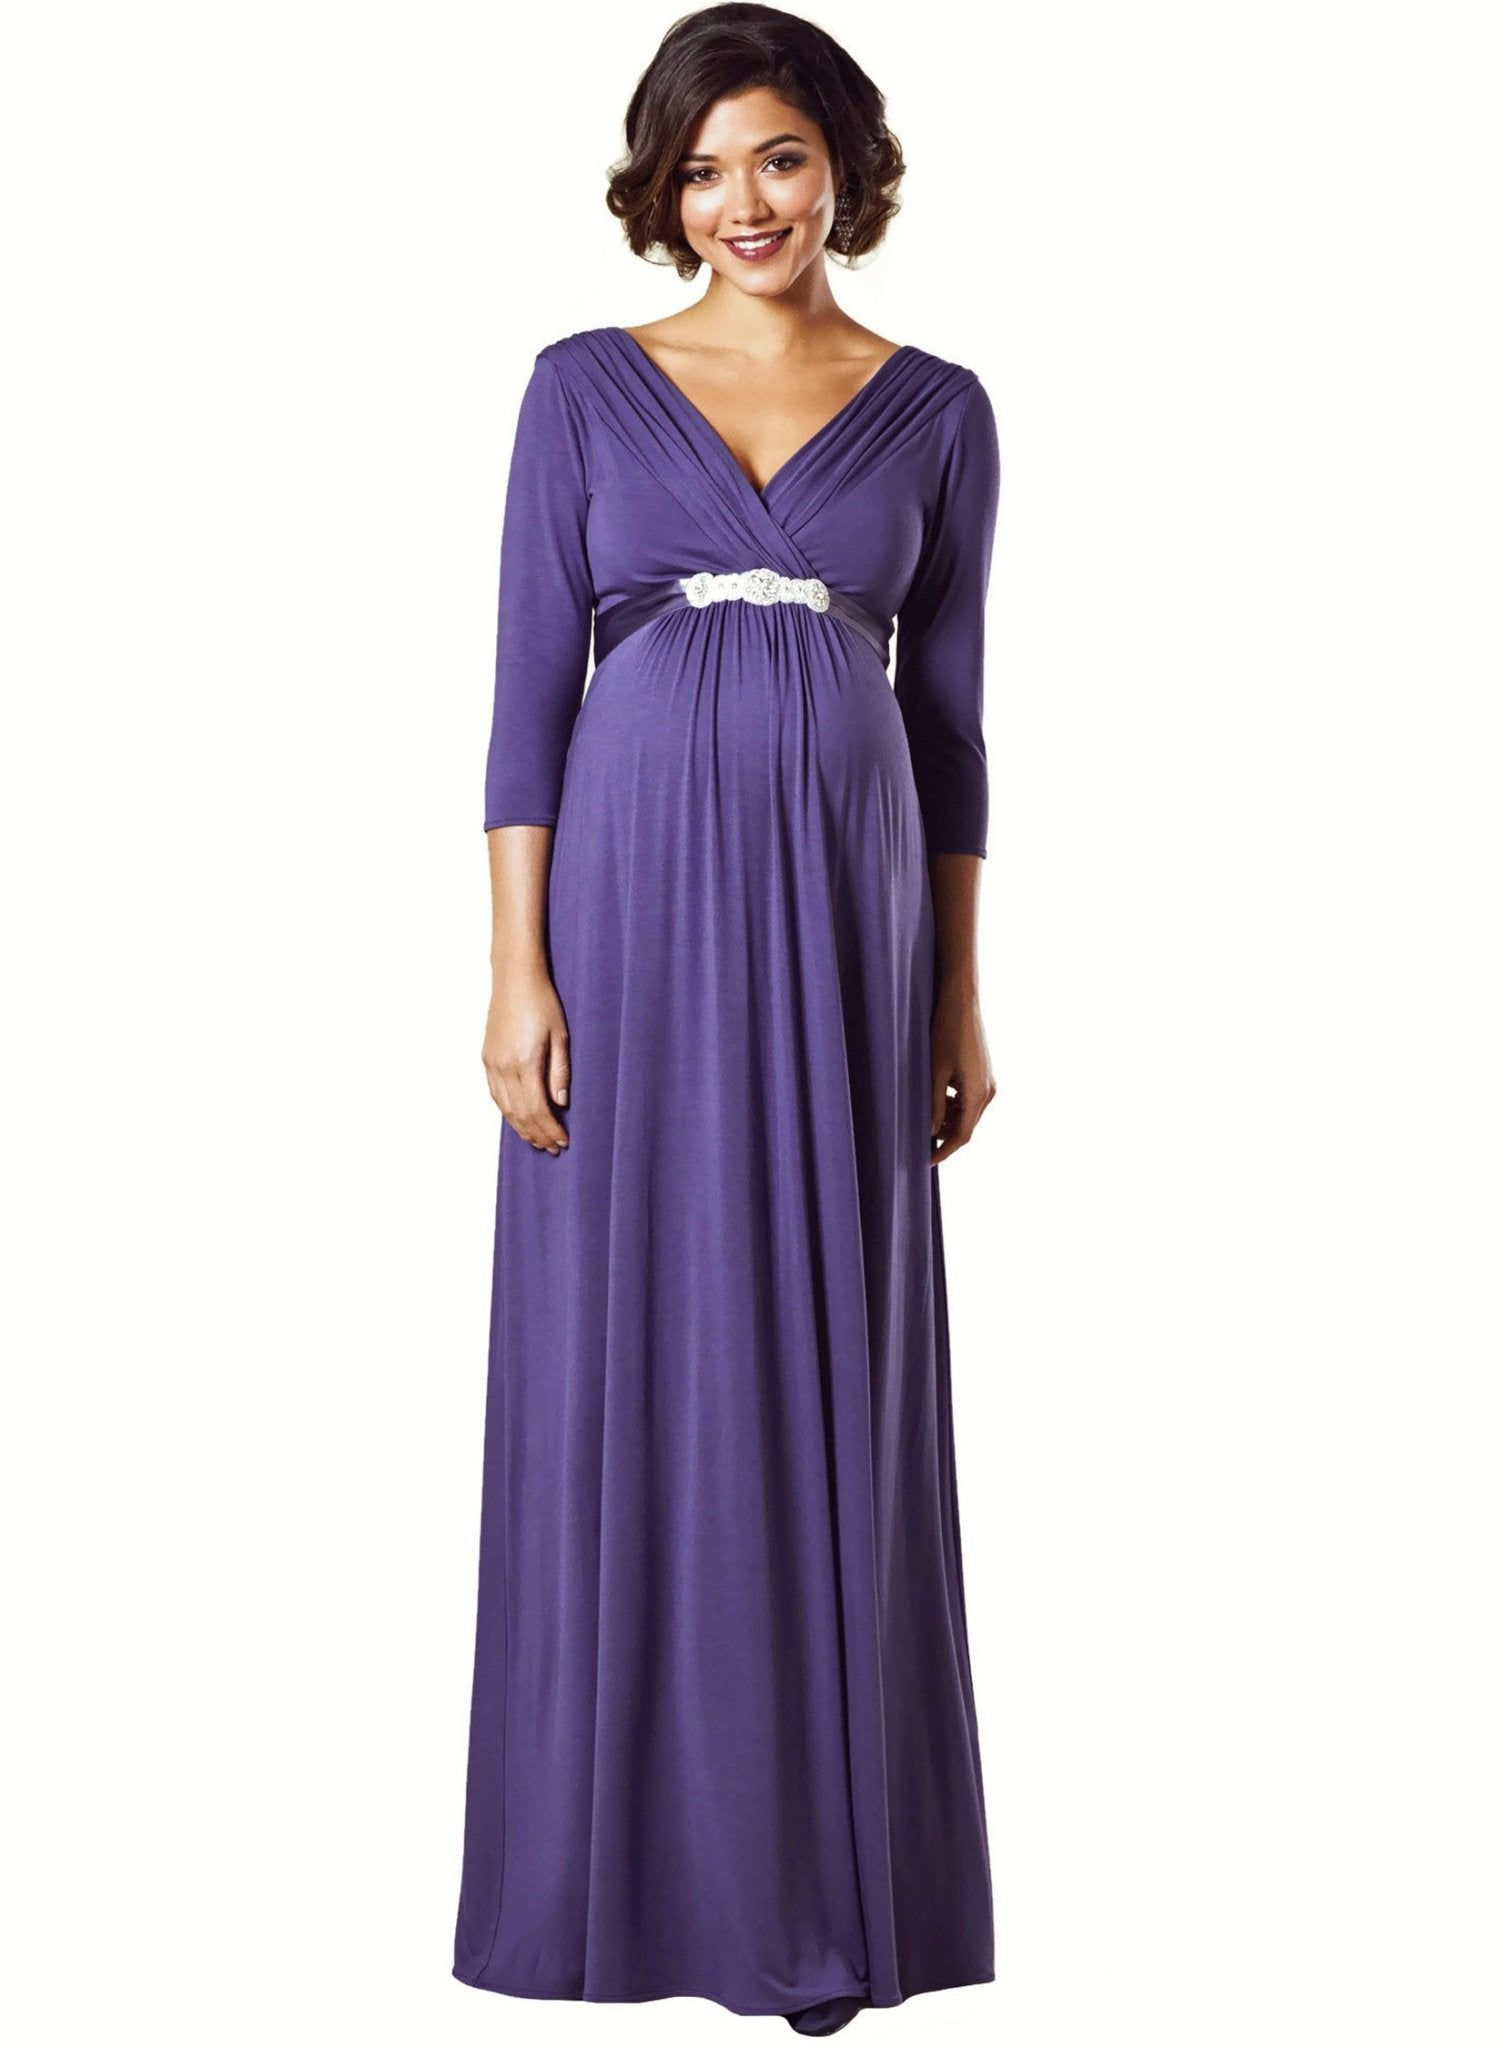 Willow Maternity Gown - Grape - Mums and Bumps